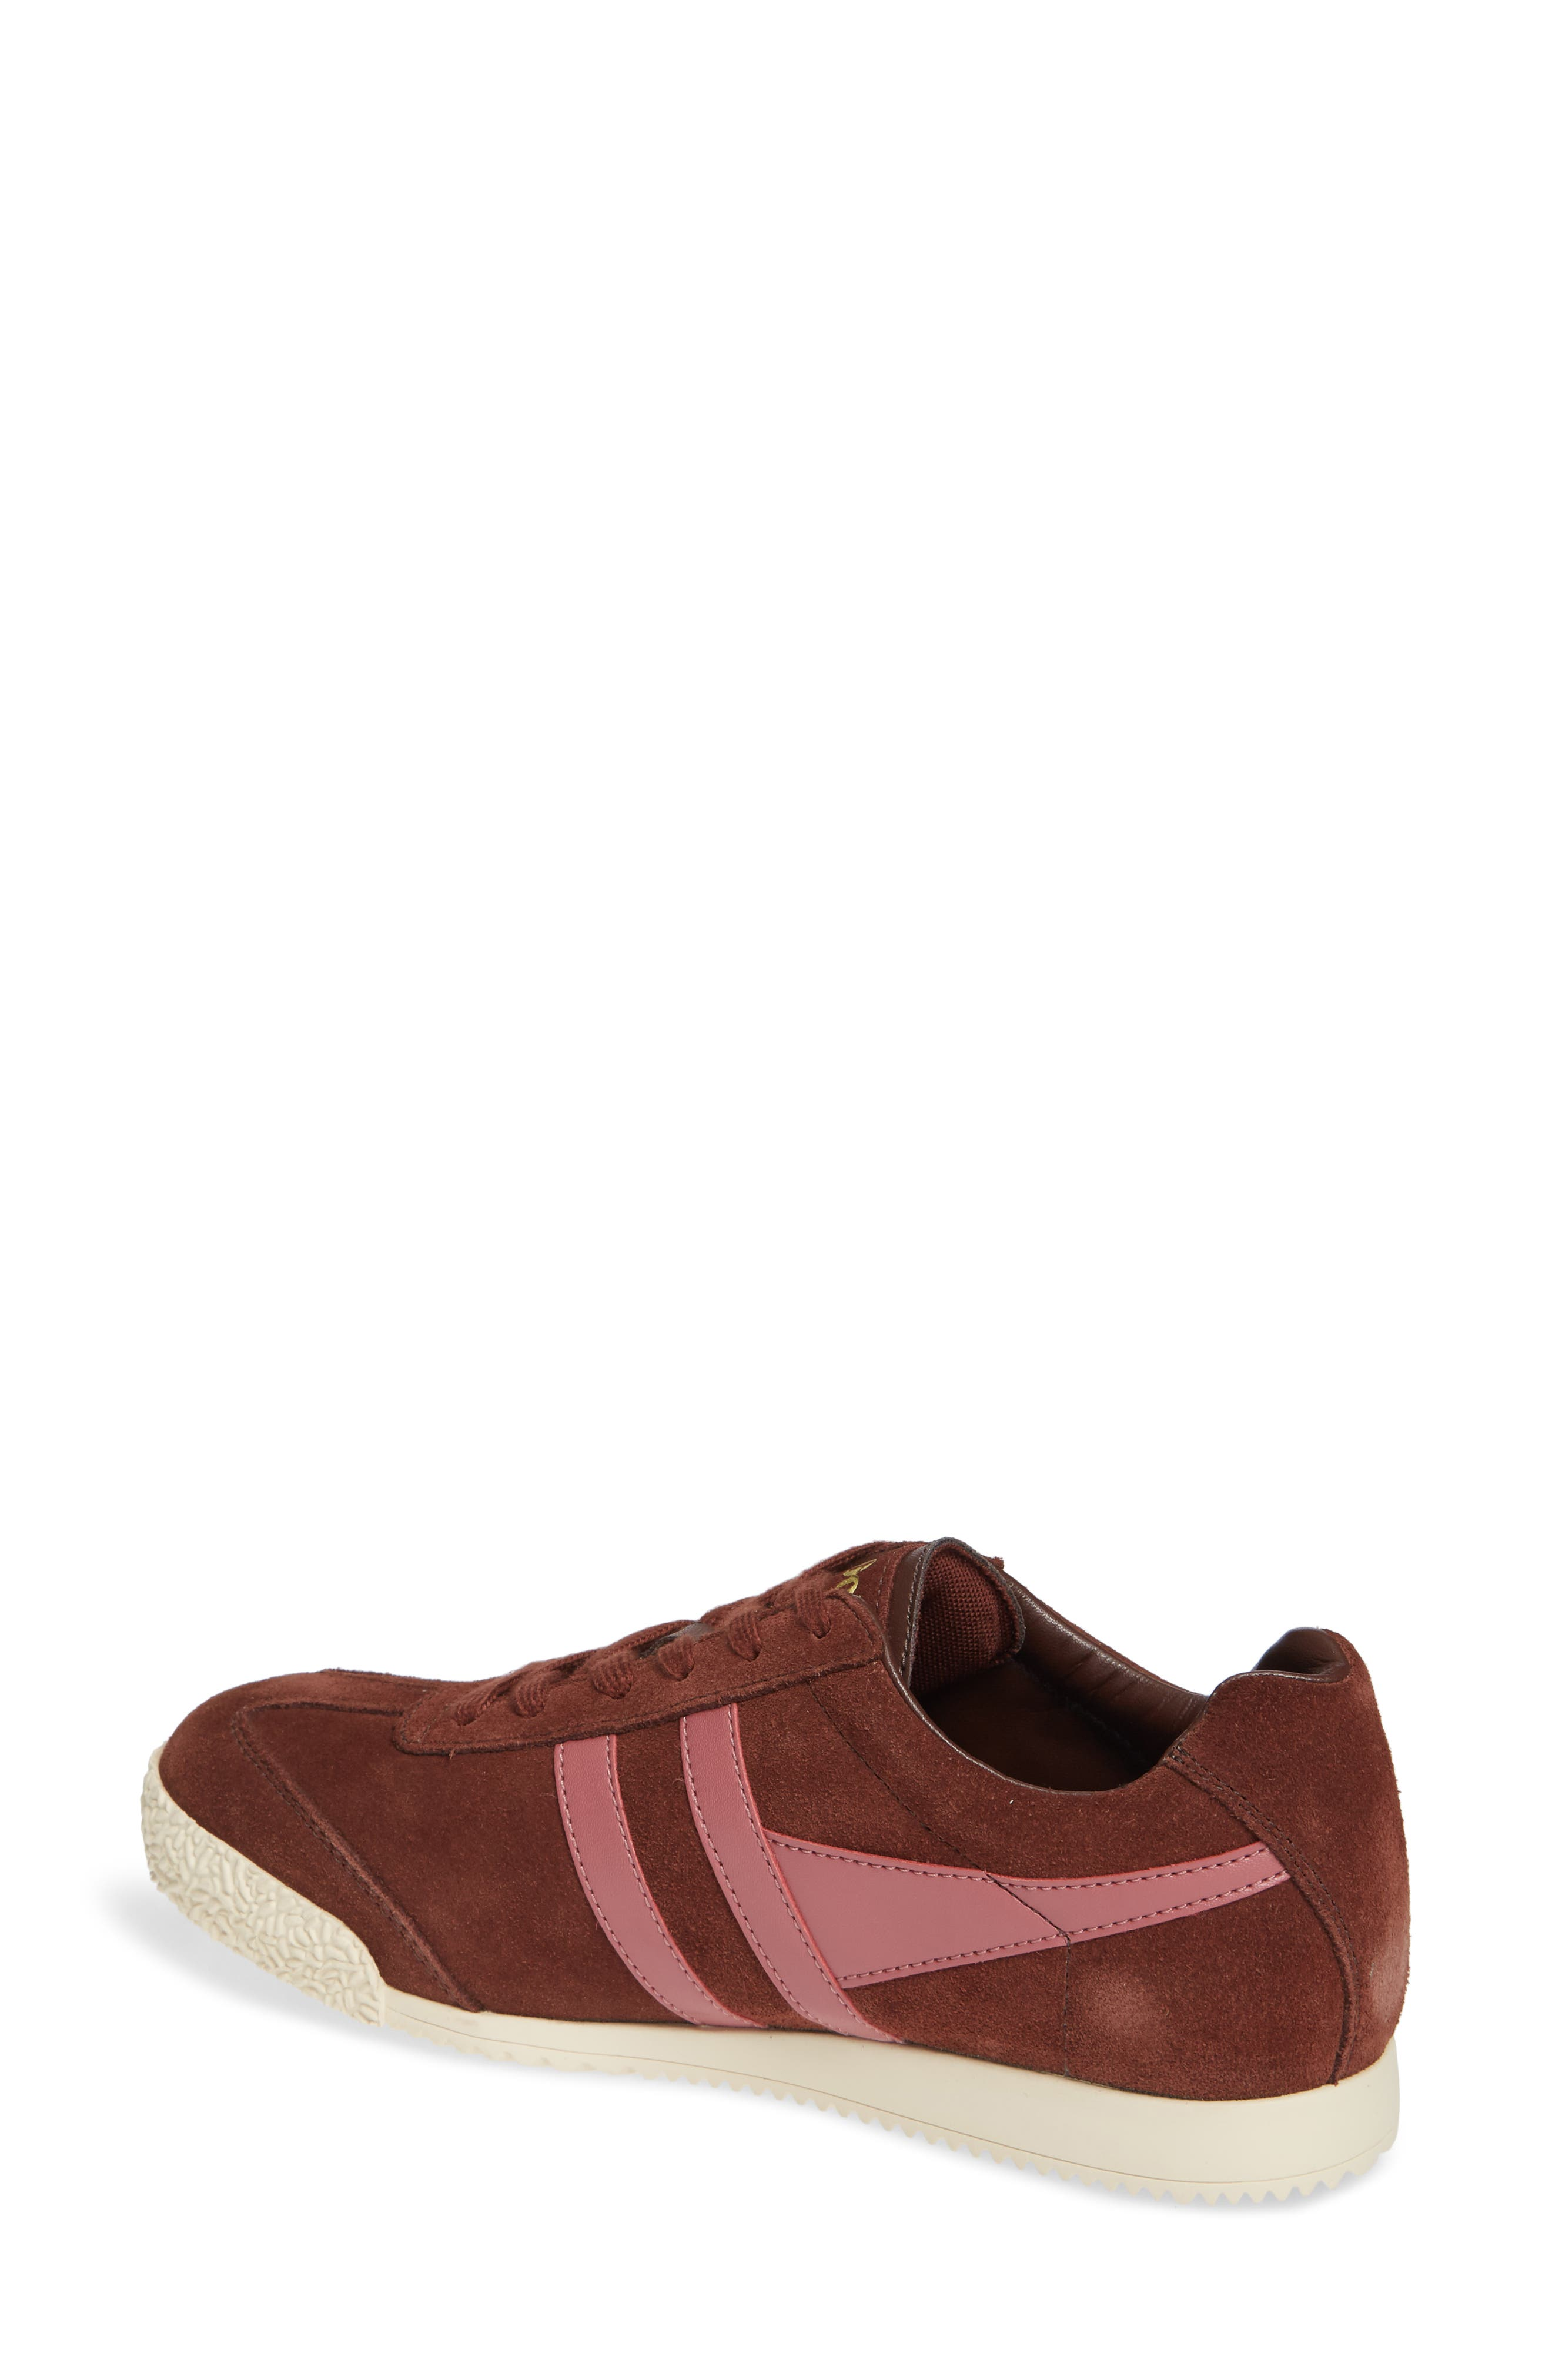 Harrier Suede Low Top Sneaker,                             Alternate thumbnail 2, color,                             COGNAC/ DUSTY ROSE